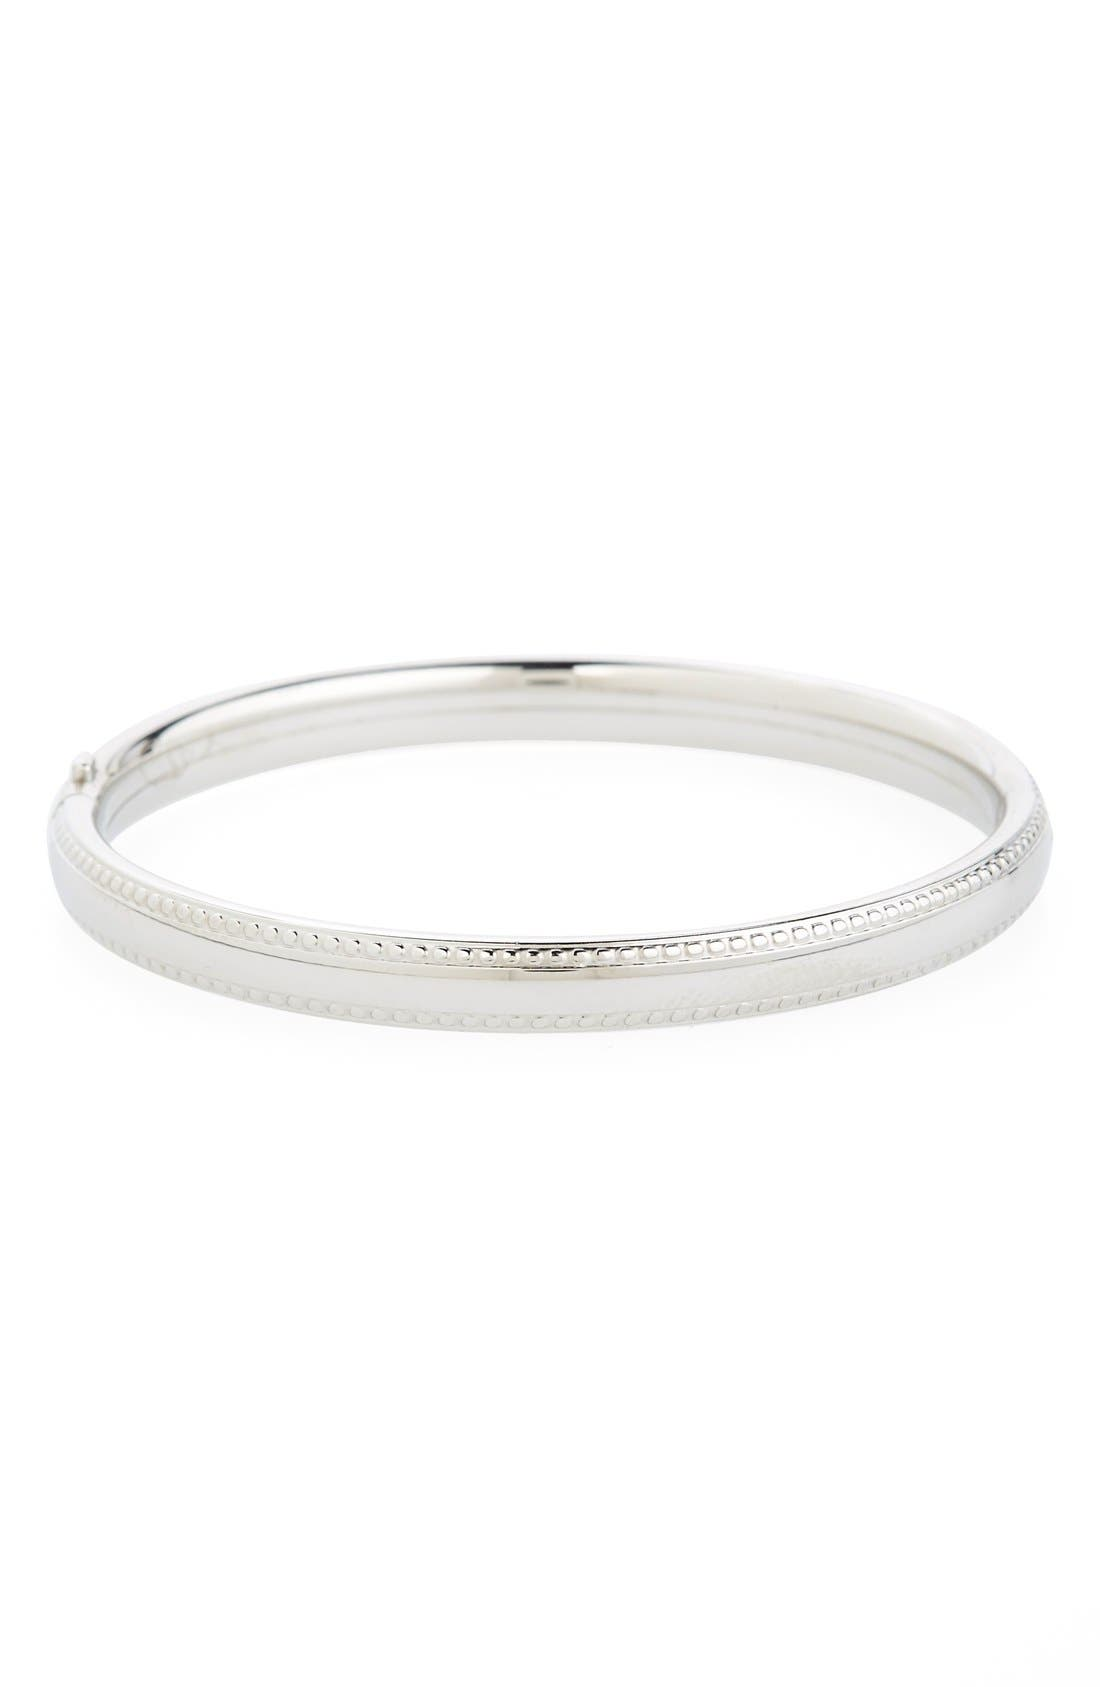 Bead Edge Silver Bangle,                         Main,                         color, SILVER